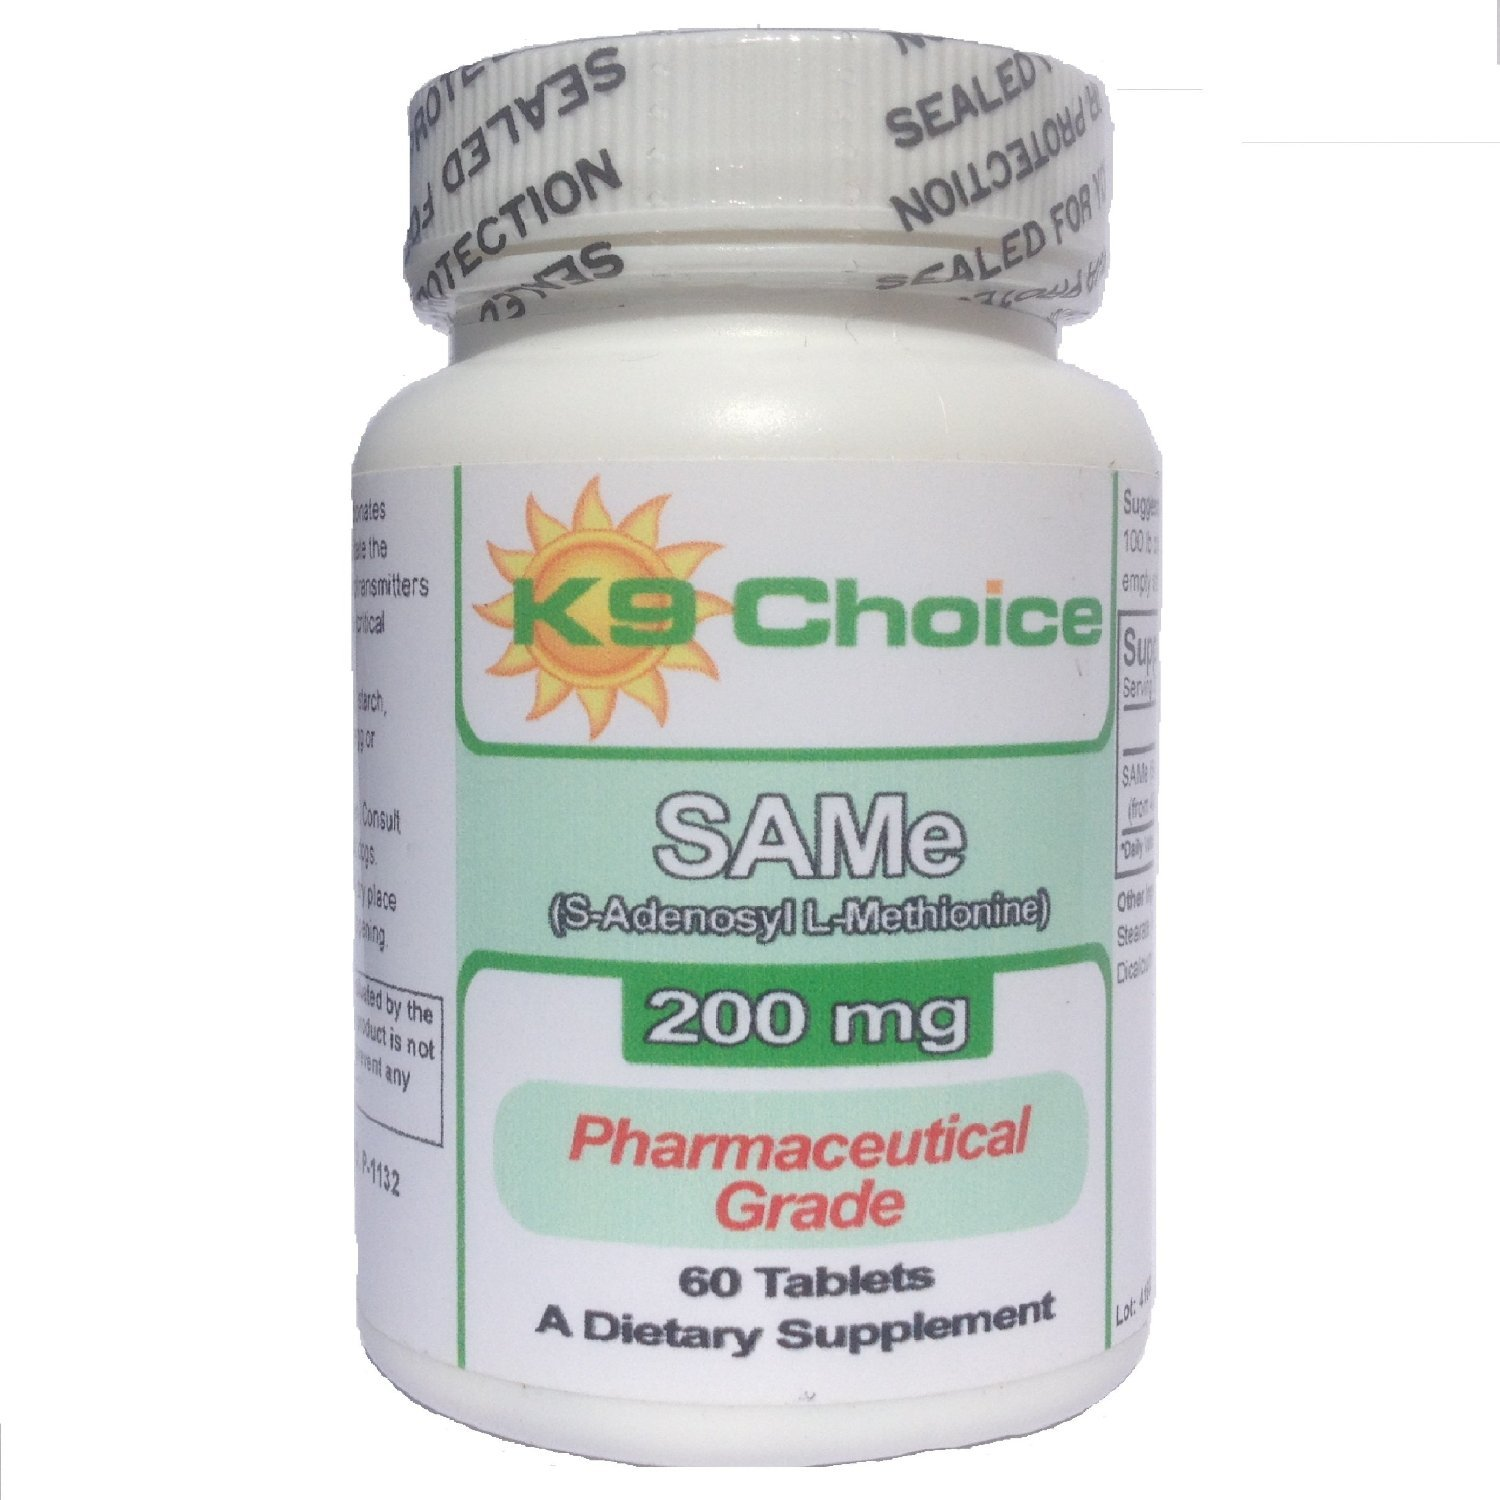 K9 Choice Same For Dogs Pet Supplies Nutrimax Healthy Joint 60 Tablet